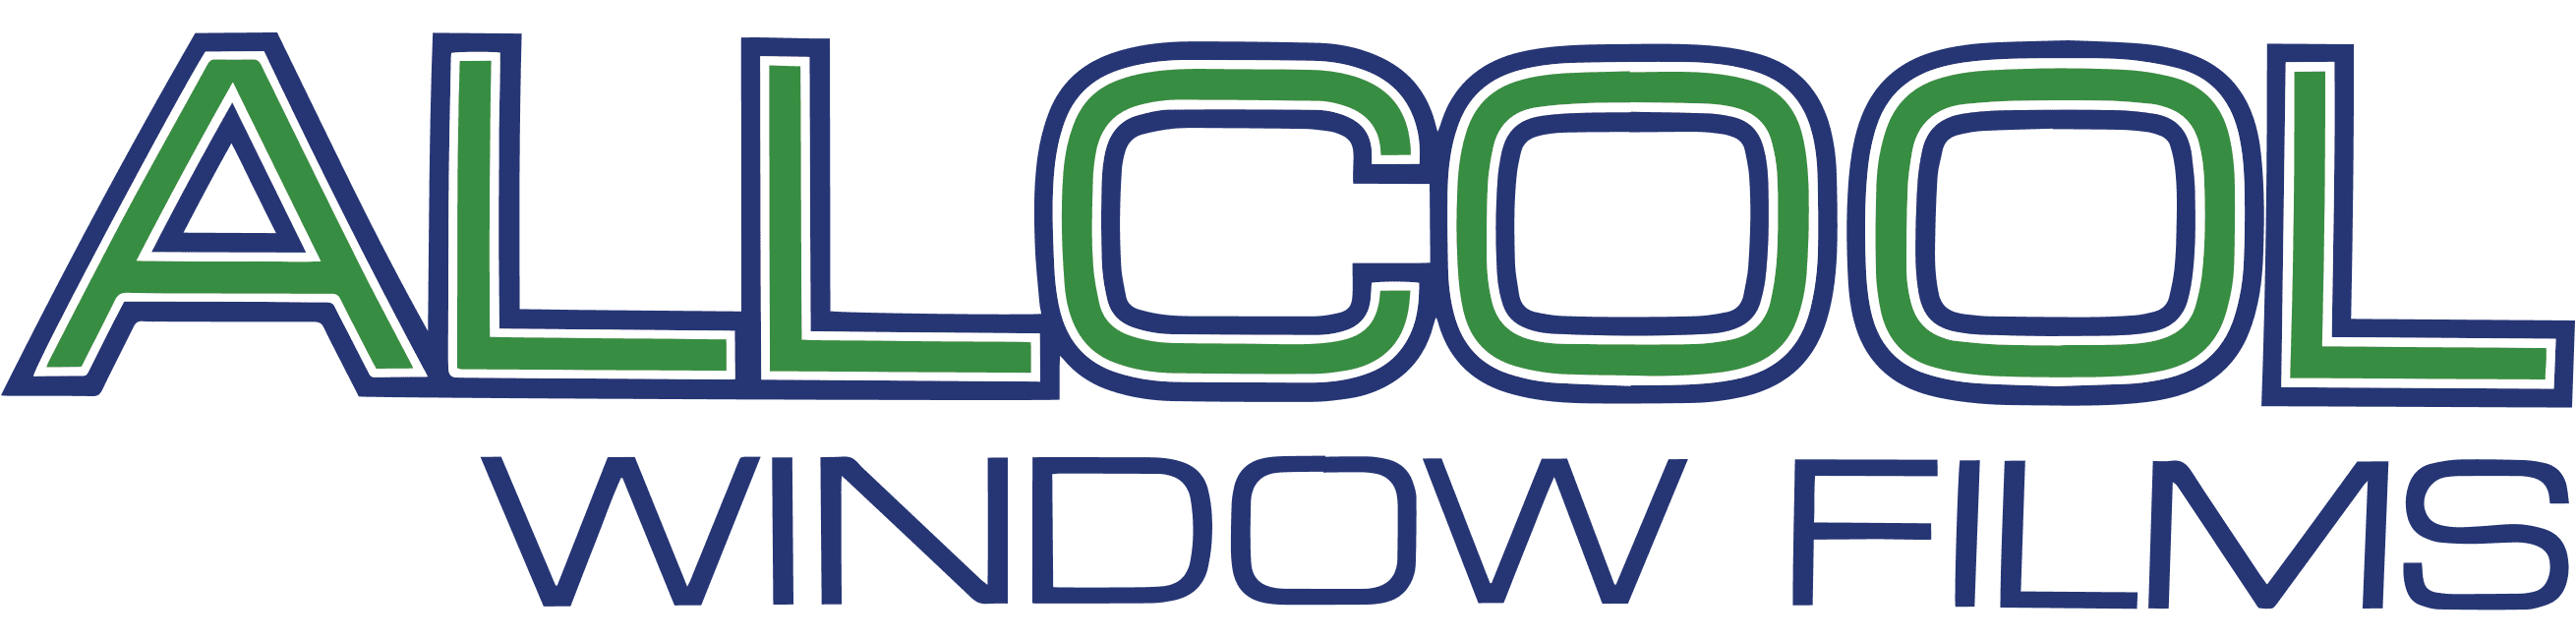 allcool window films business logo